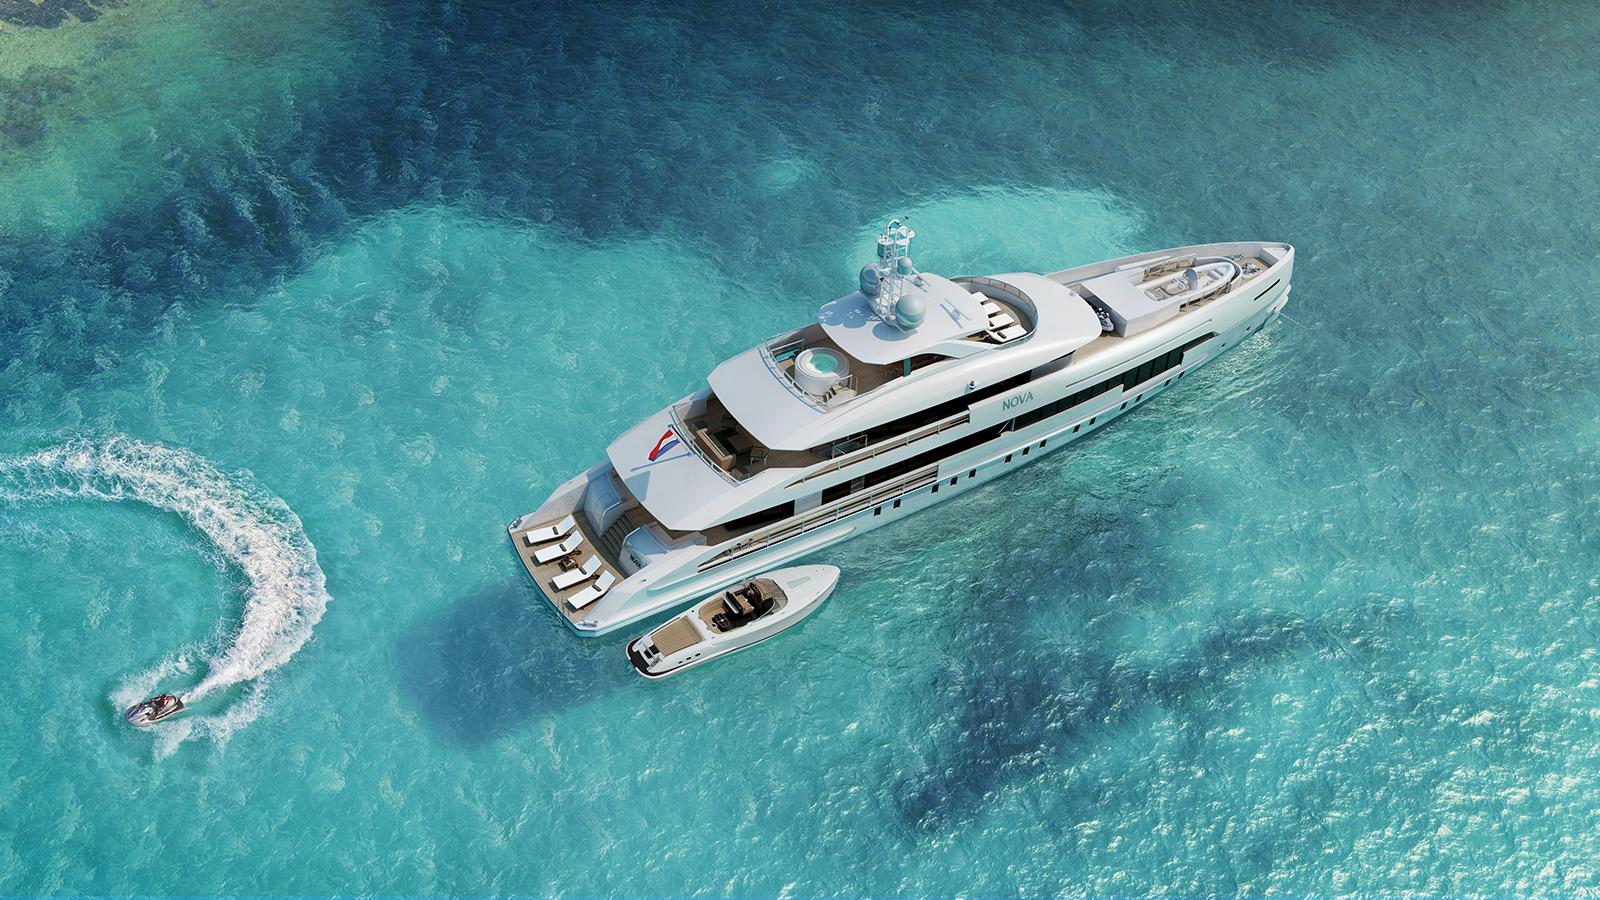 Project Nova launched by Heesen and named Home